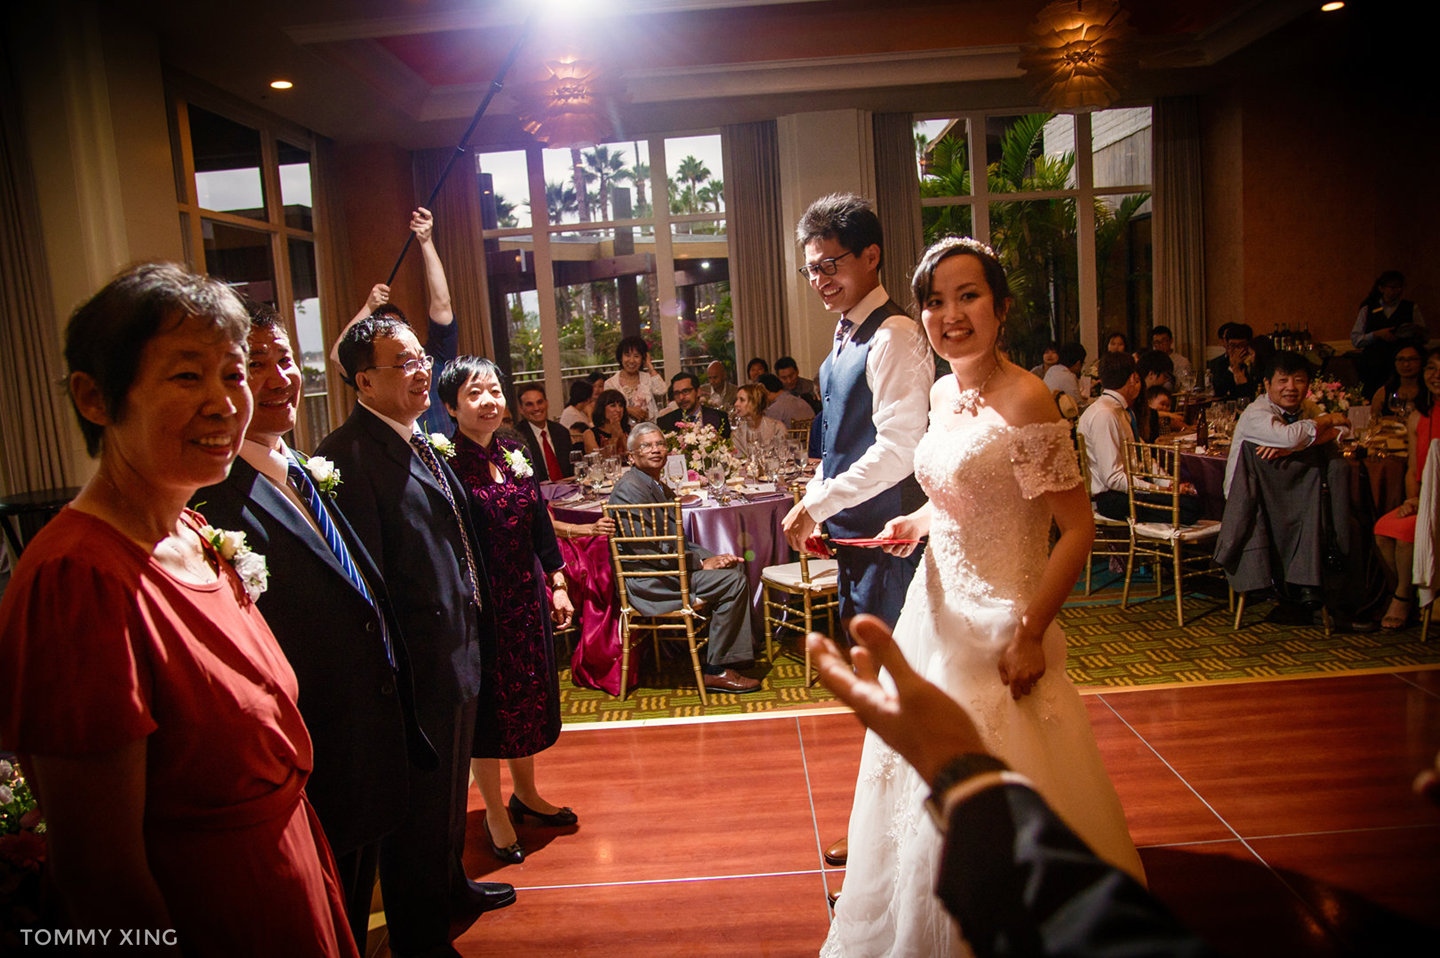 Paradise Point Resort Wedding Xiaolu & Bin San Diego 圣地亚哥婚礼摄影跟拍 Tommy Xing Photography 洛杉矶婚礼婚纱照摄影师 272.jpg